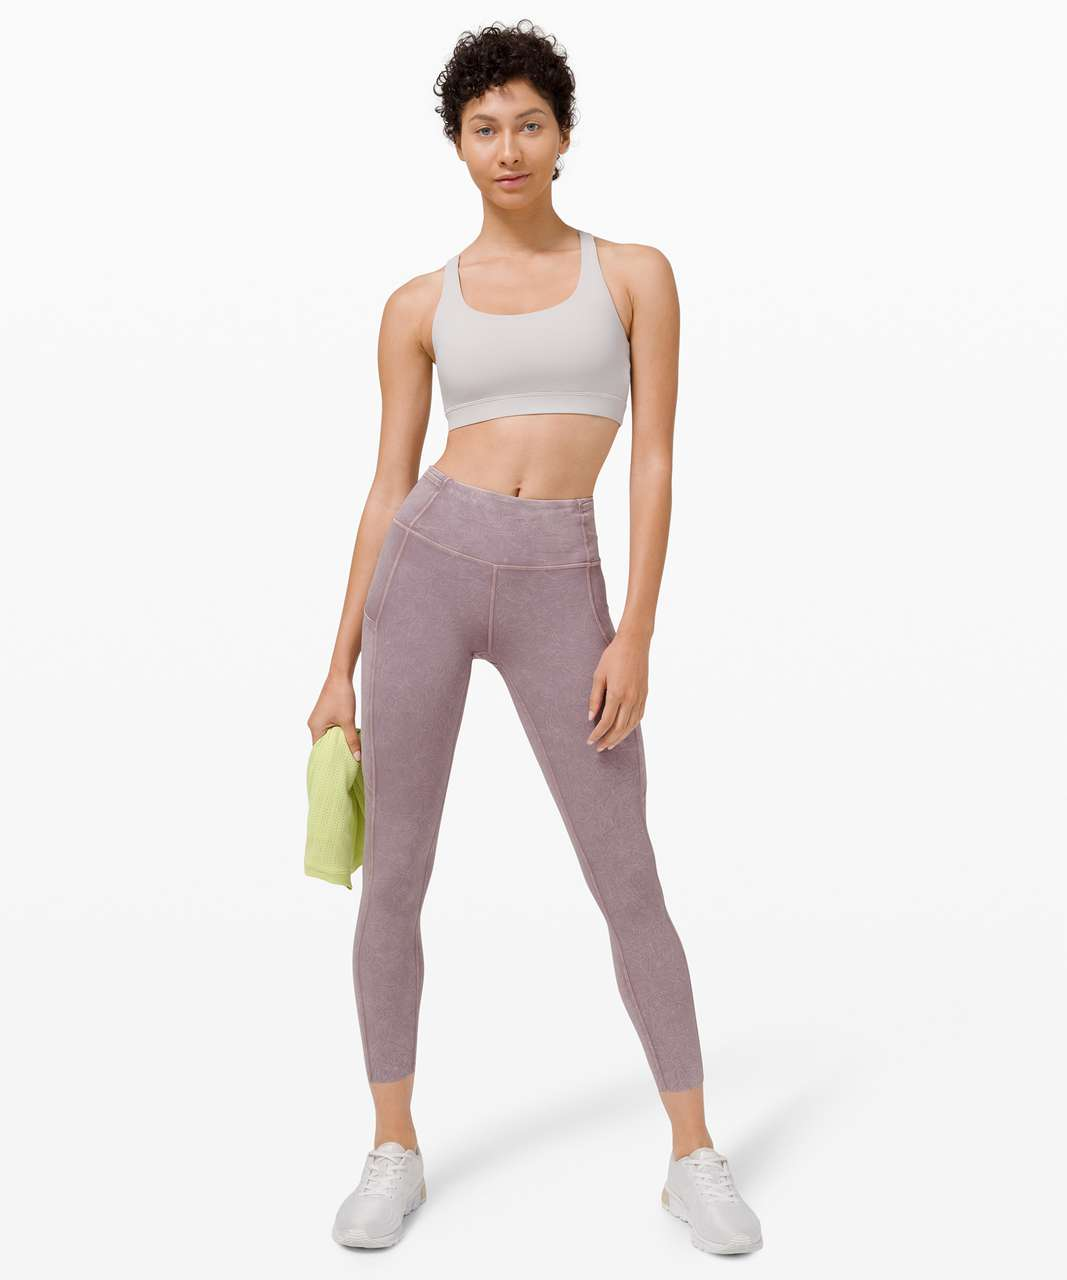 "Lululemon Fast and Free Tight II 25"" Ice Dye *Non-Reflective - Ice Wash Violet Verbena"